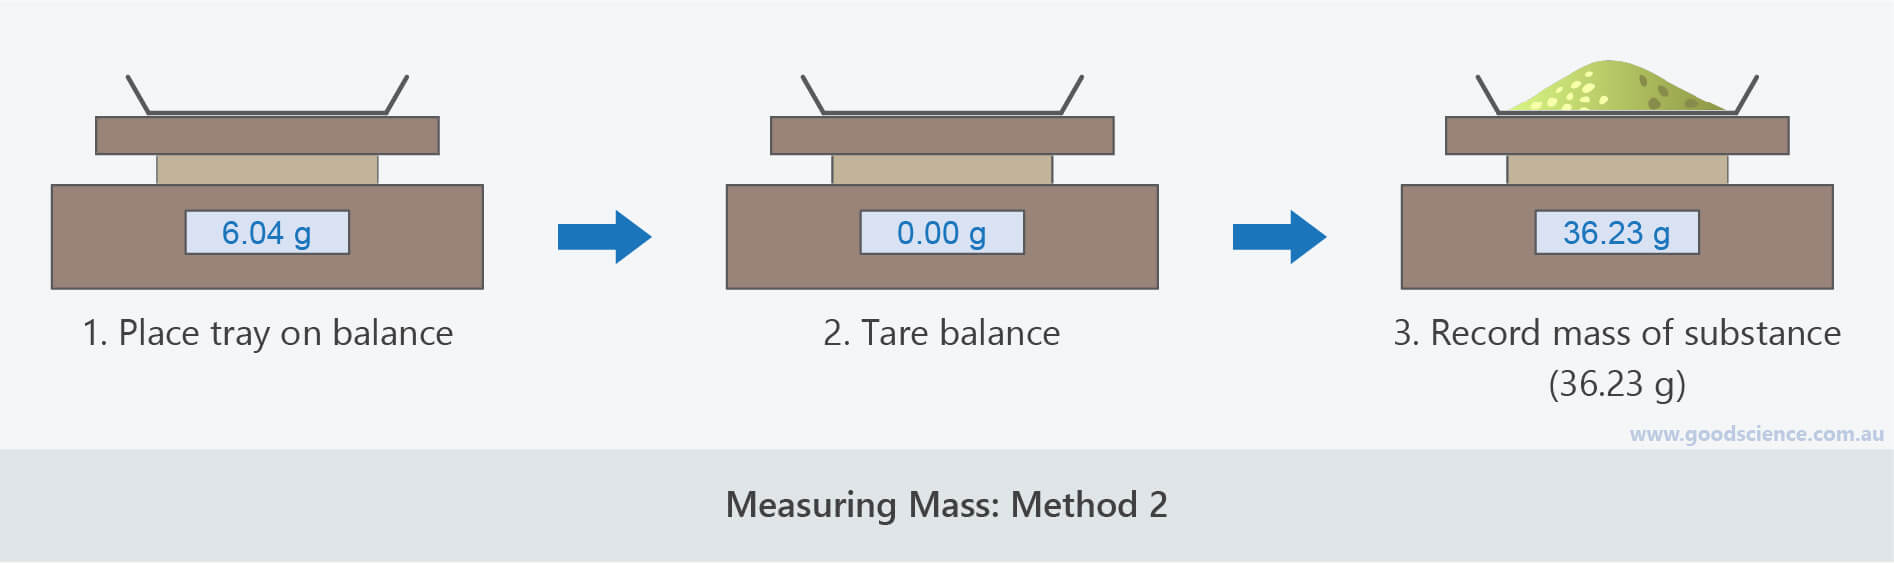 measuring mass electronic balance